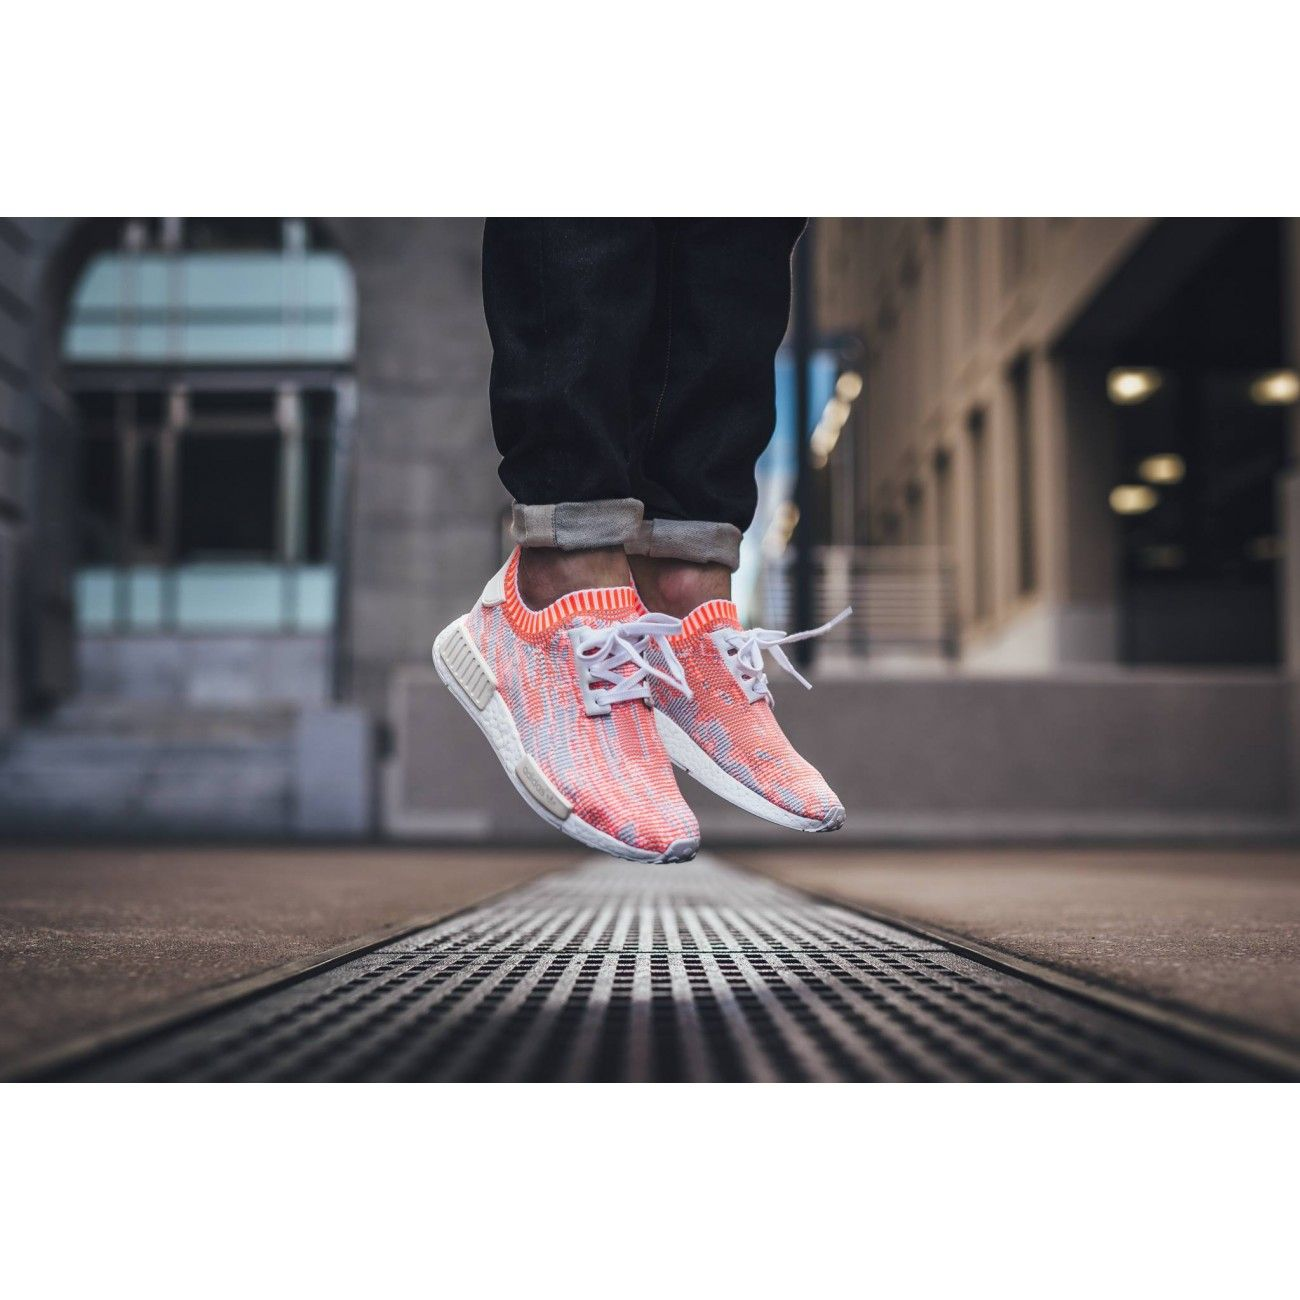 newest eda08 229ea Adidas NMD_R1 Primeknit 'Camo Pack – Solar Red' in 2019 ...